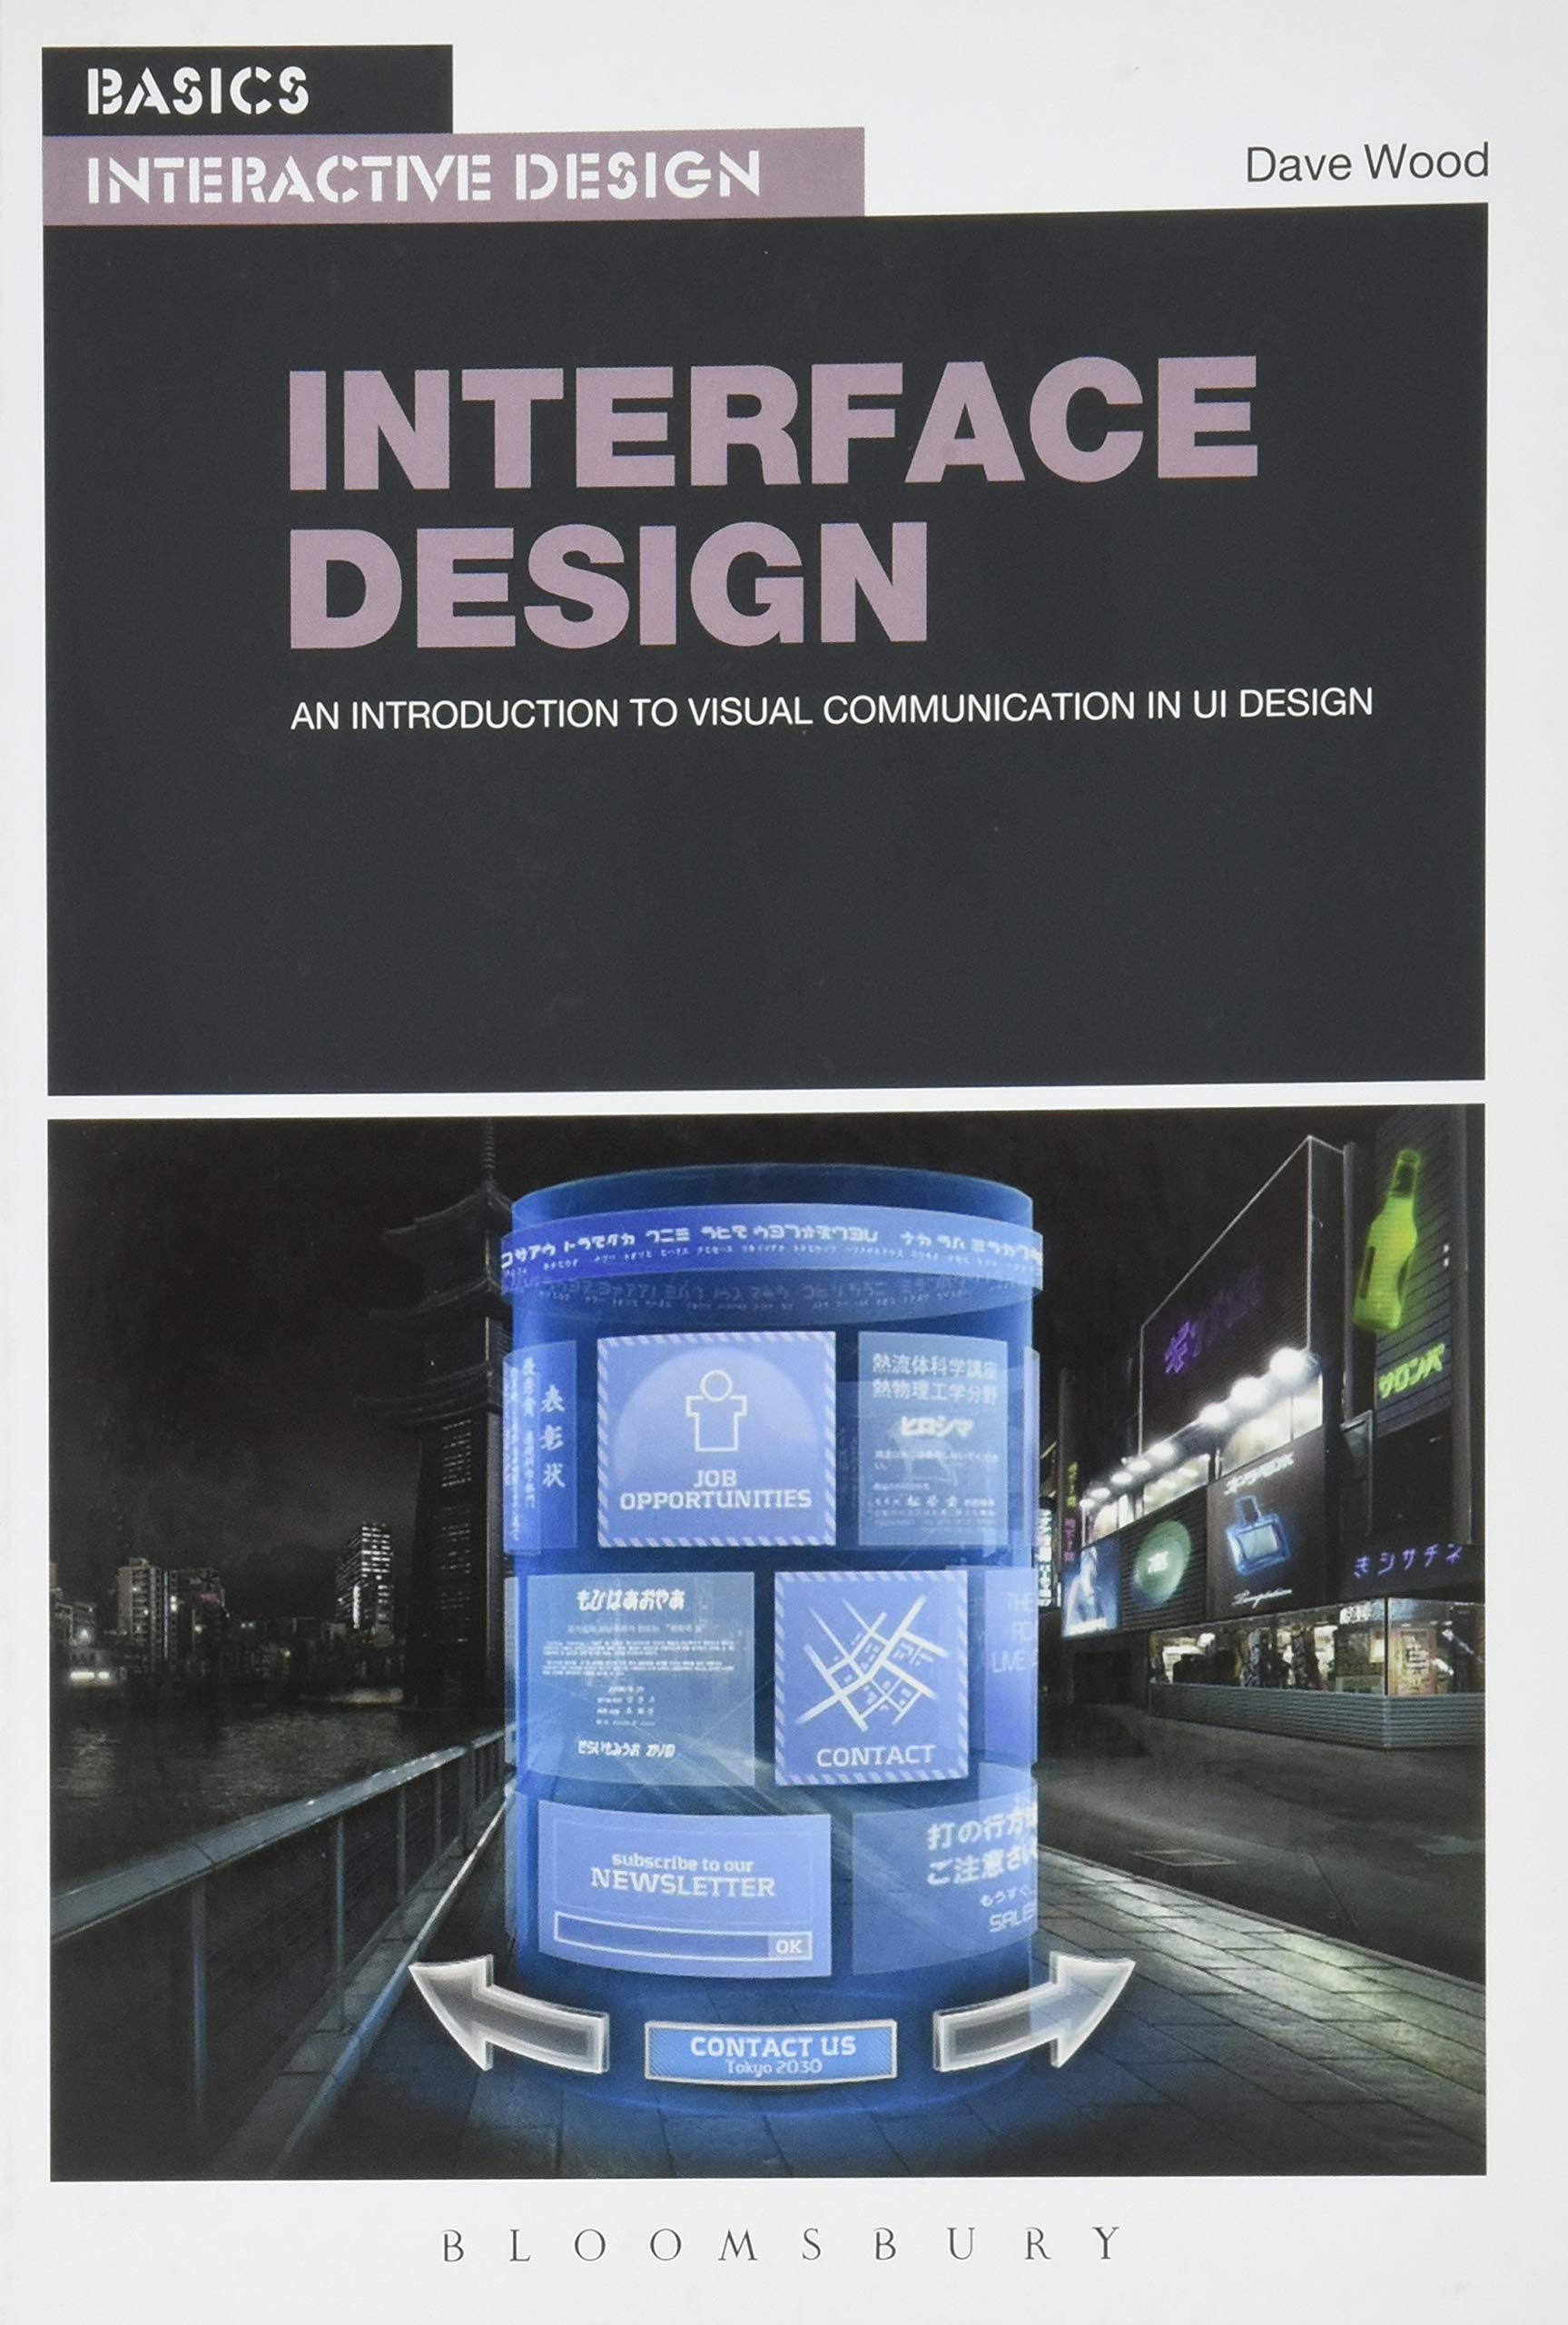 Basics Interactive Design Interface Design An Introduction To Visual Communication In Ui Design David Wood 9782940411993 Amazon Com Books